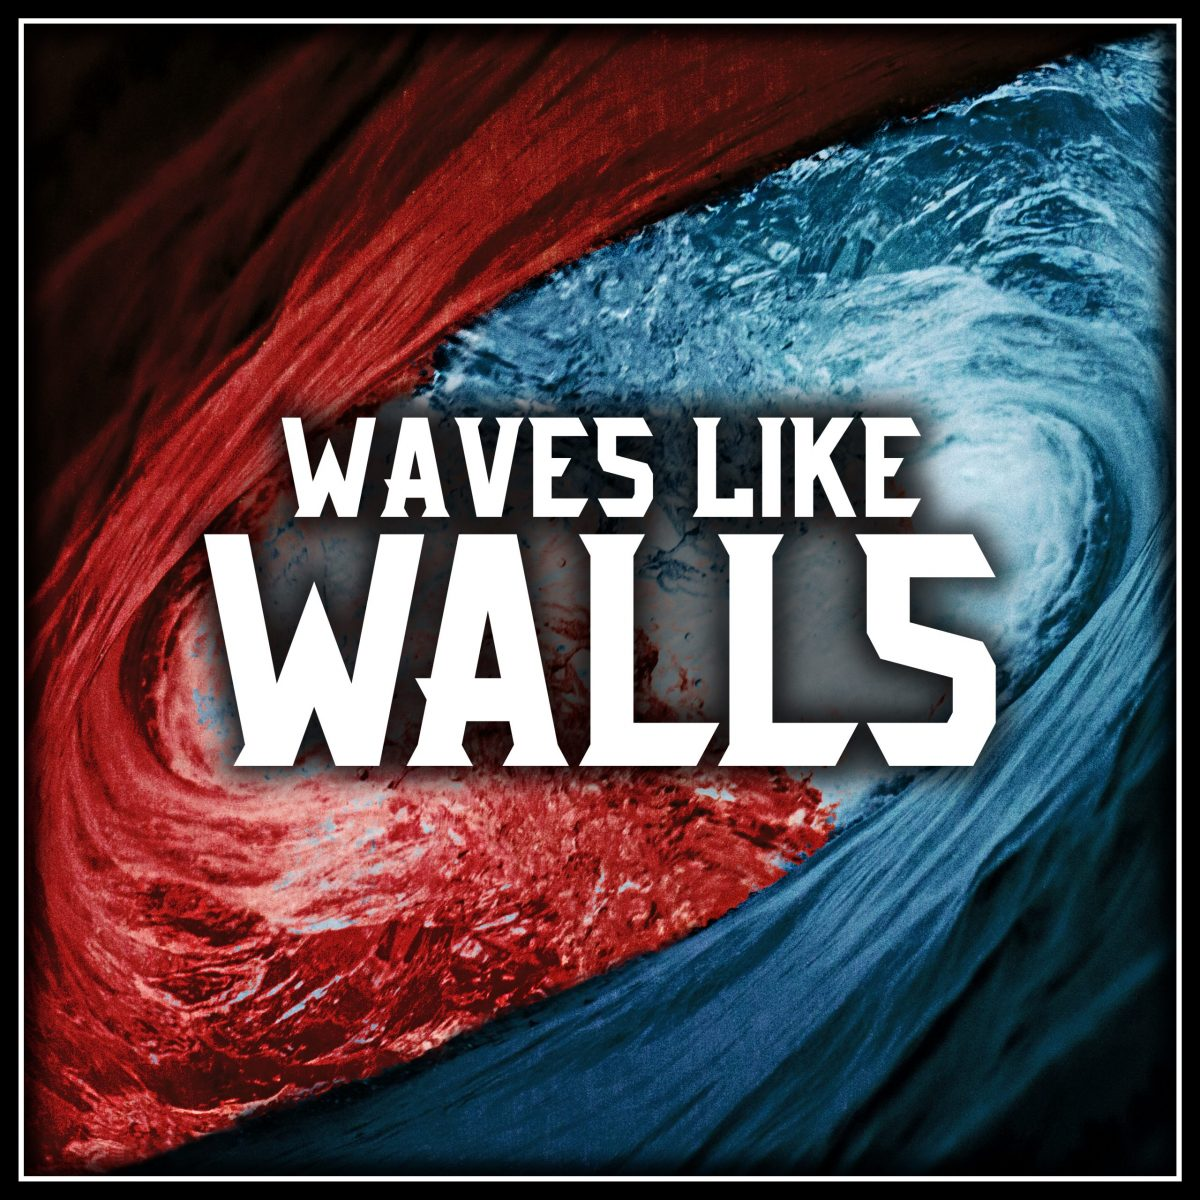 waves-like-walls-waves-like-walls-neue-metalcore-hoffnung-album-review